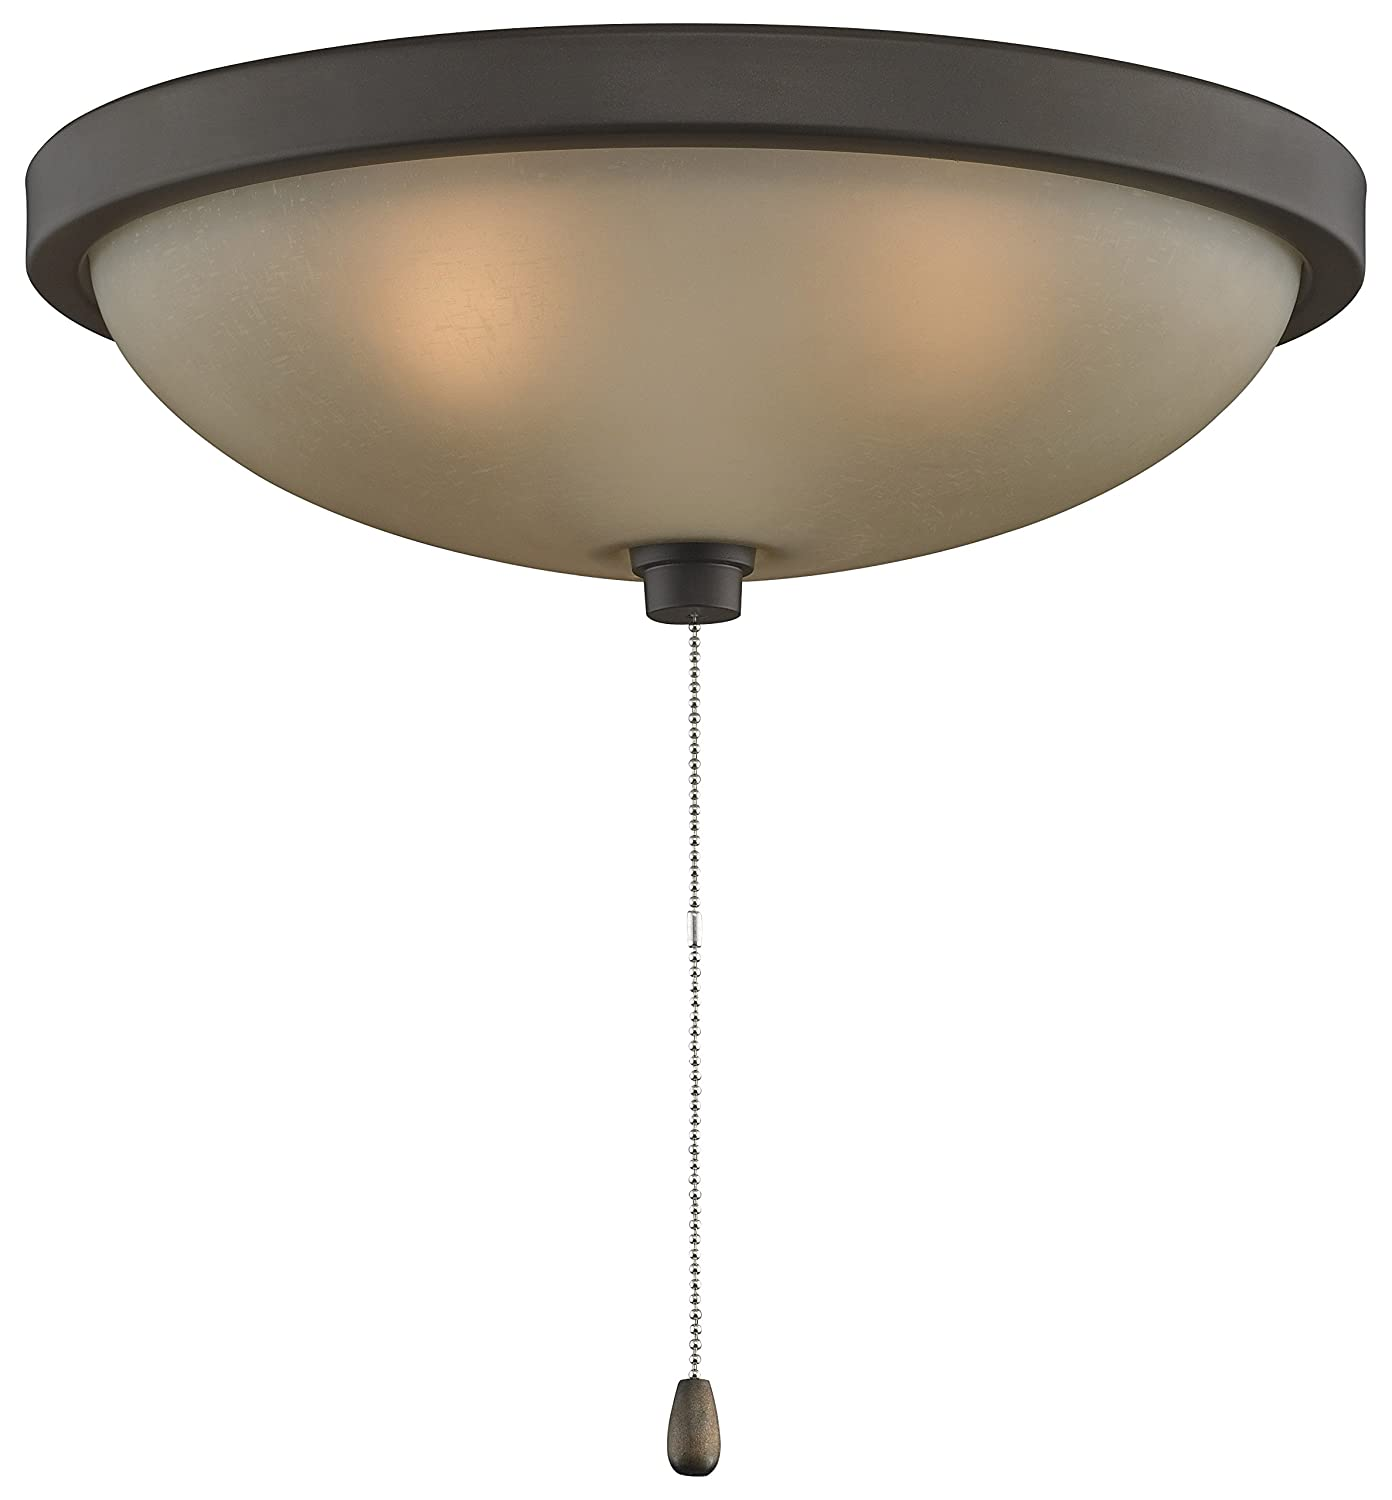 kit orb light rubbed shown blades ceiling comes bronze fan oil with oasis wet location